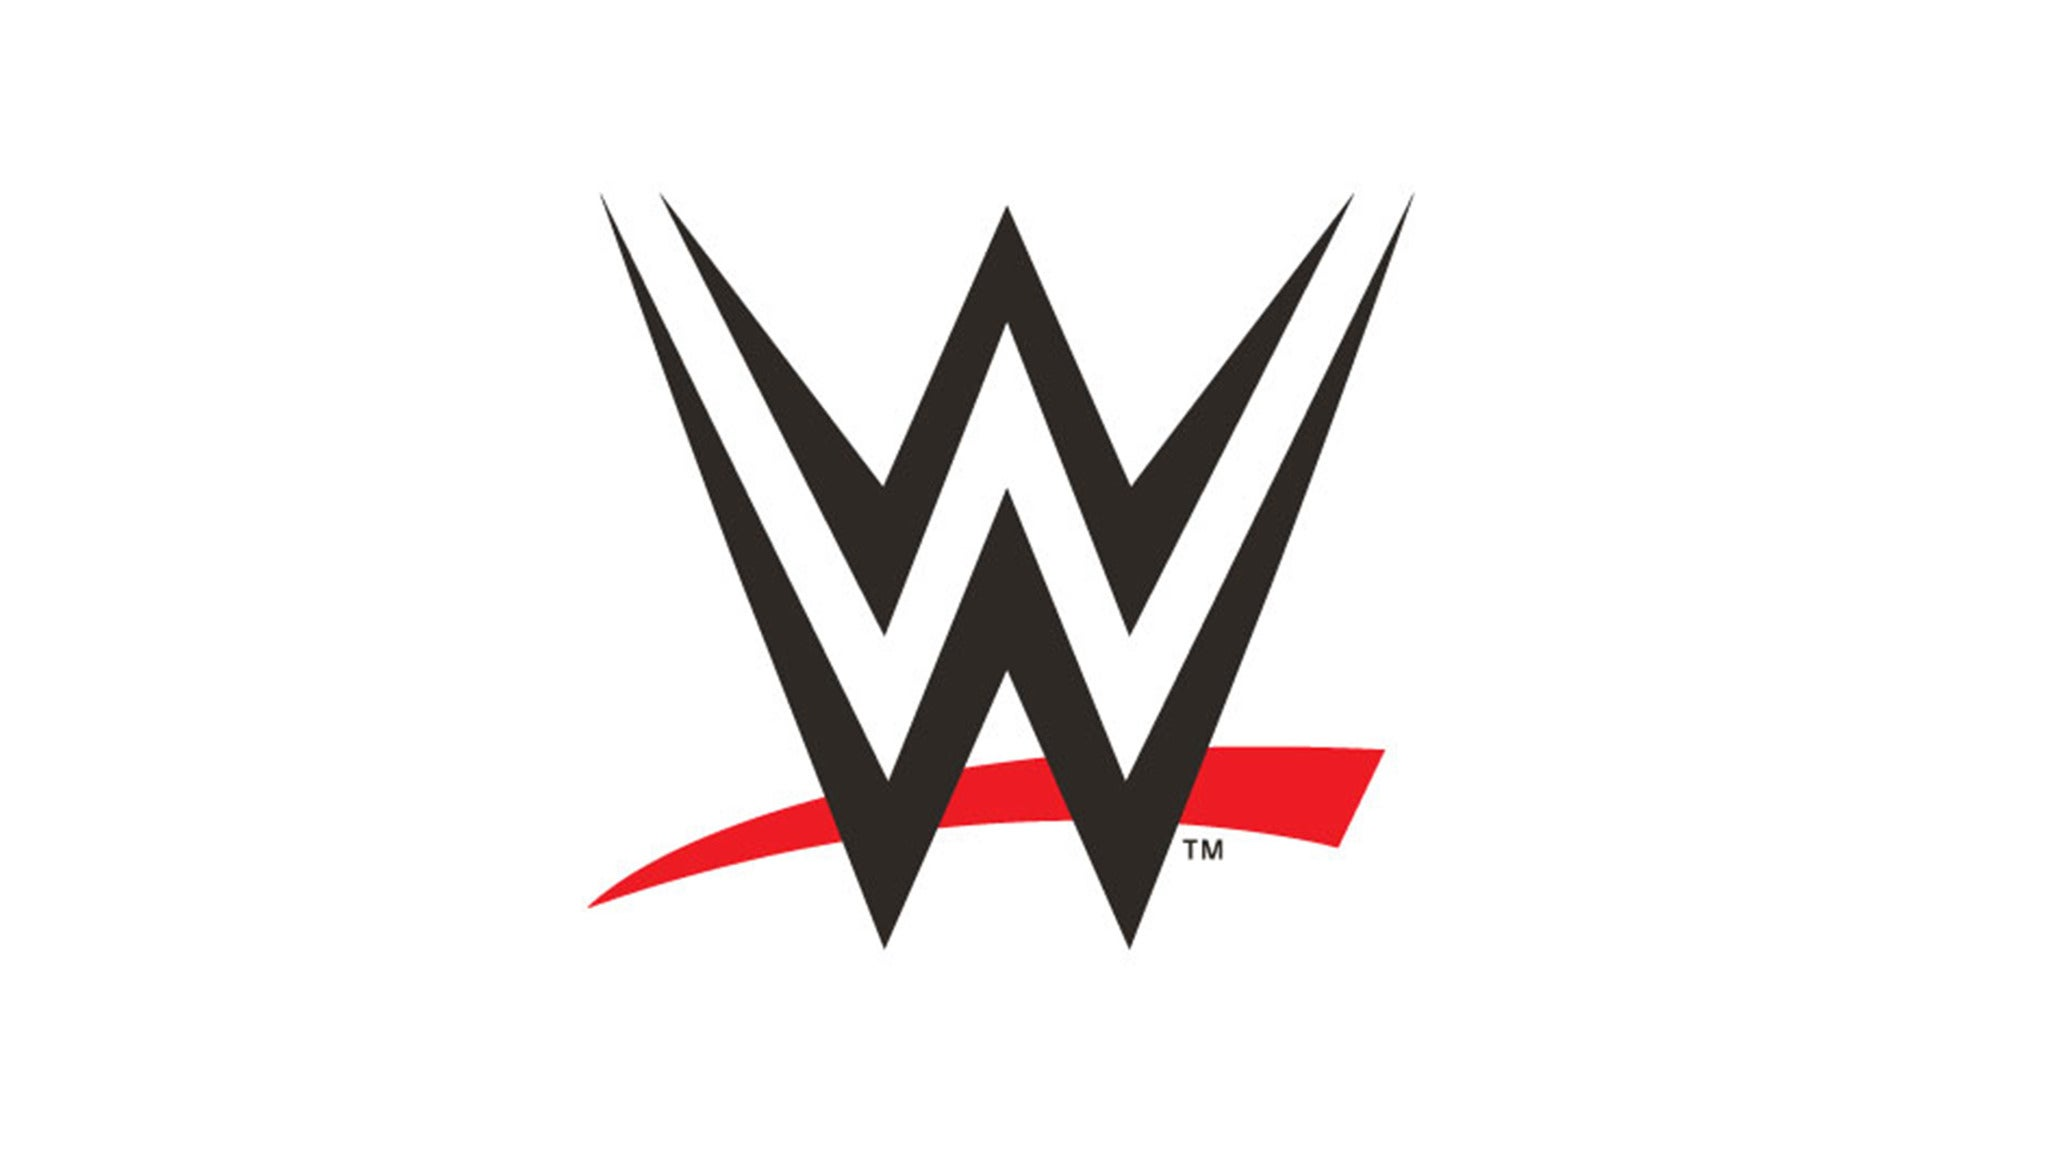 WWE - World Wrestling Entertainment at SIU Arena